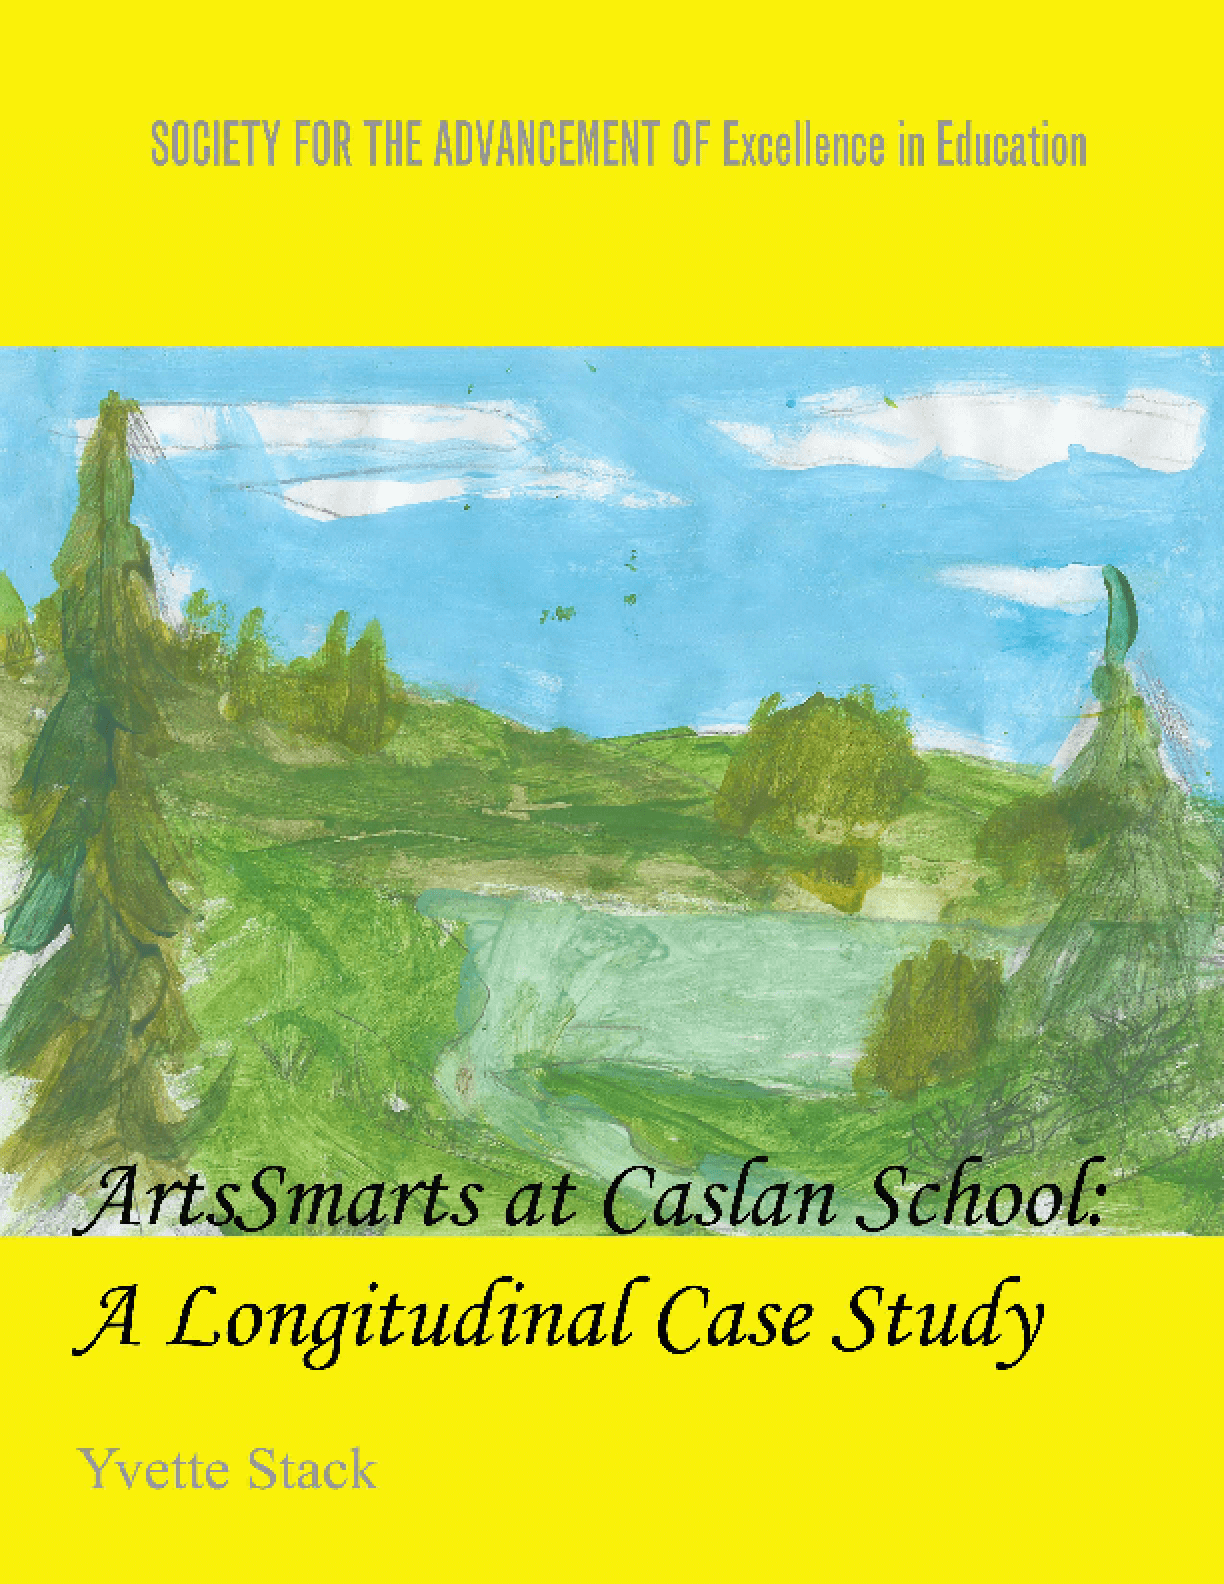 Arts Smarts at Caslan School: A Longitudinal Case Study